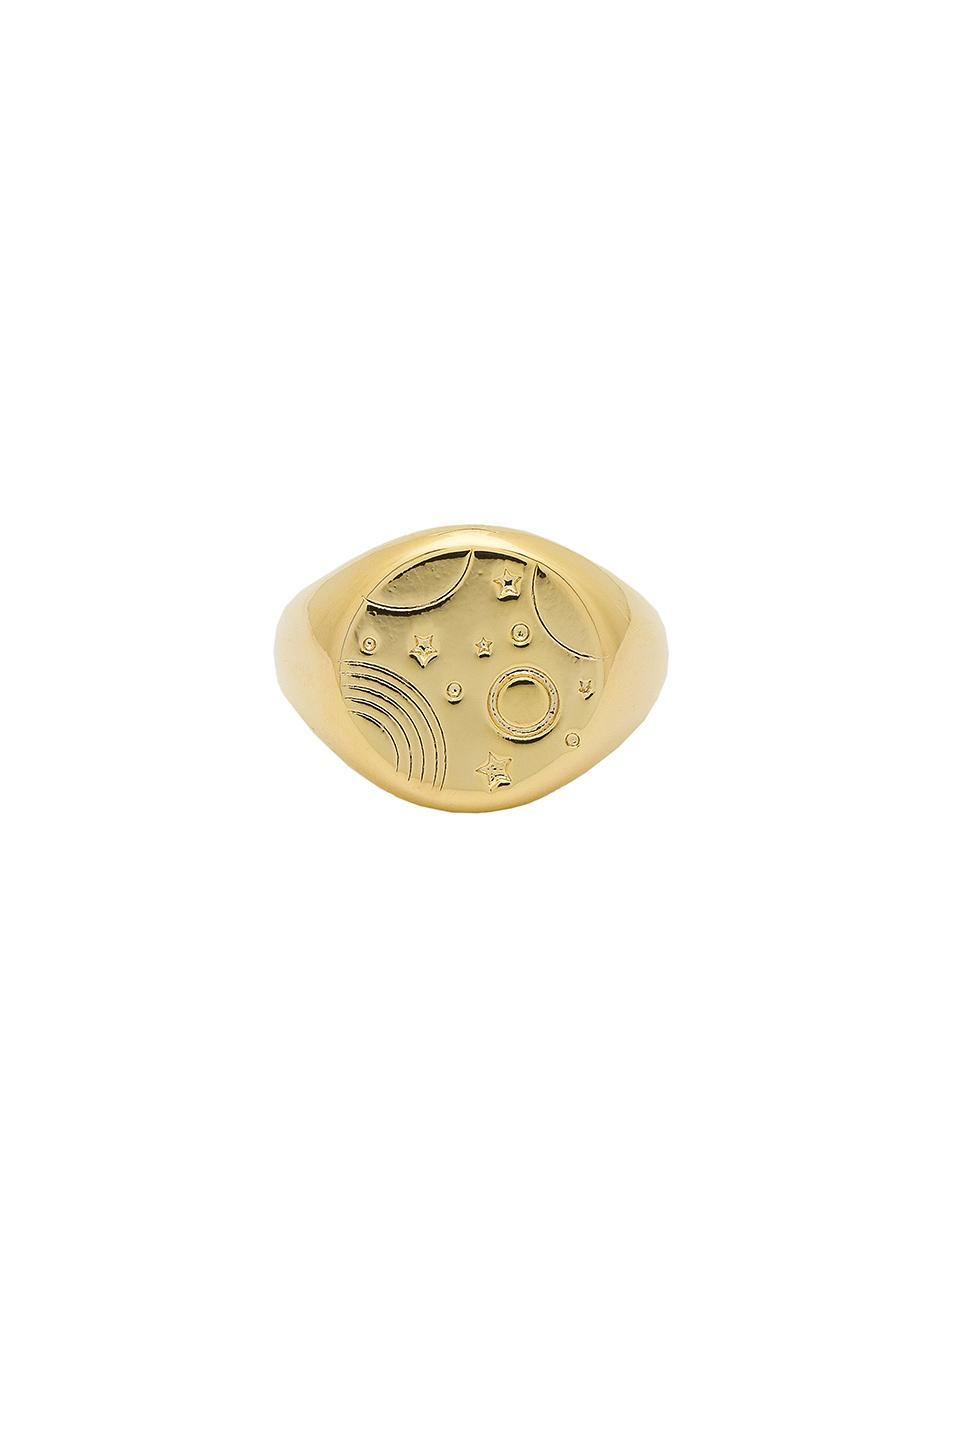 Wanderlust + Co Orbit Signet Ring In Gold